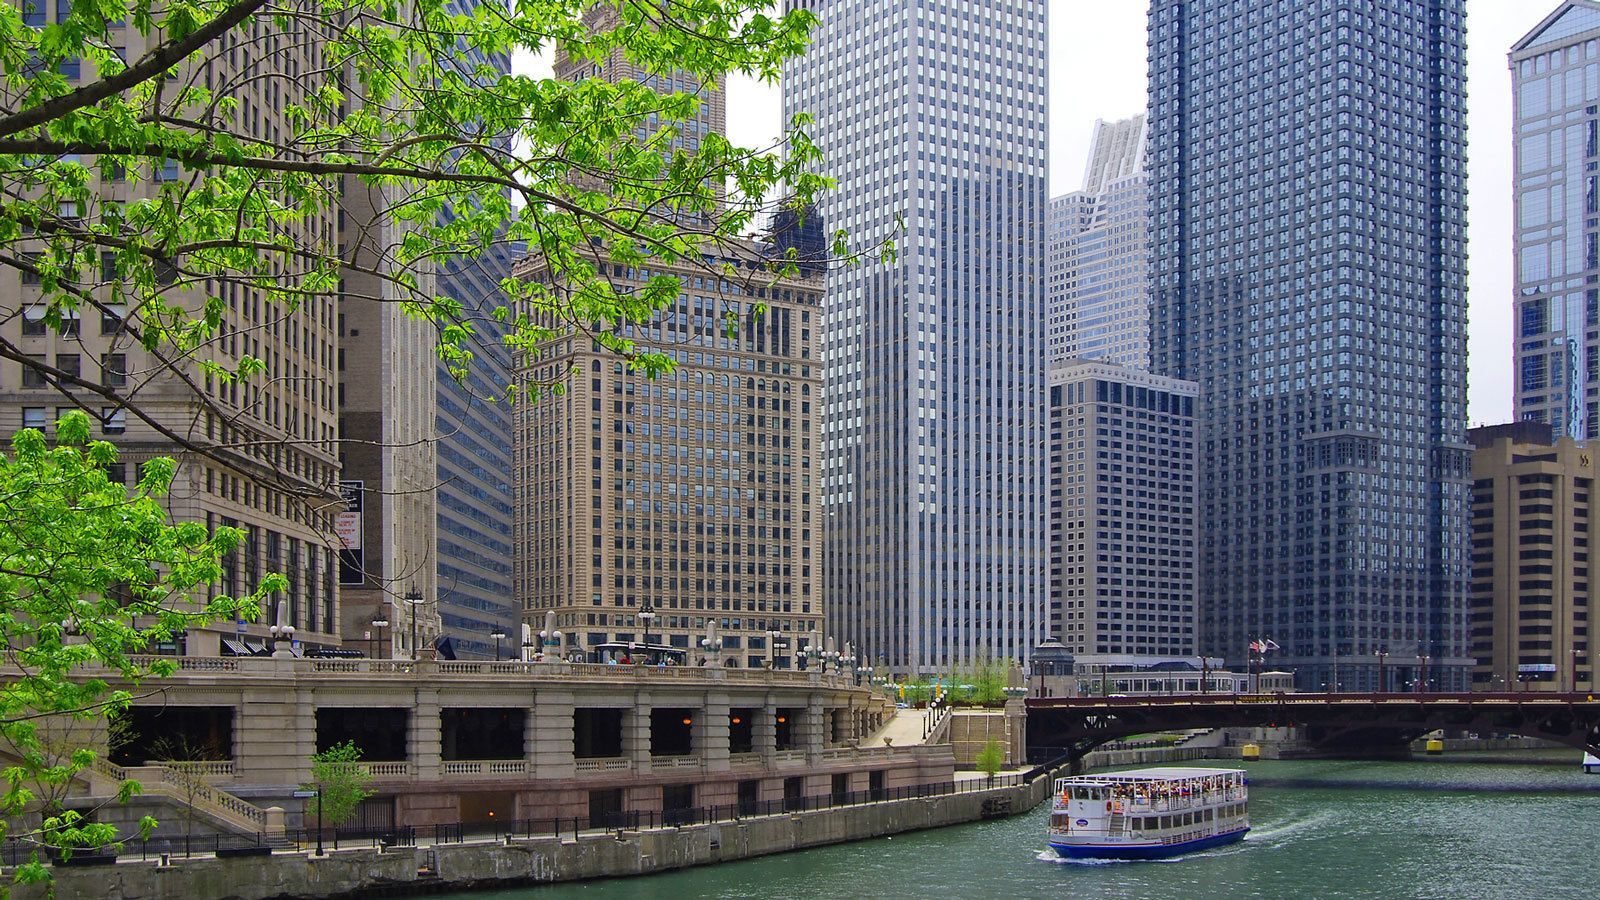 boat full of passengers exploring the water channel in Chicago